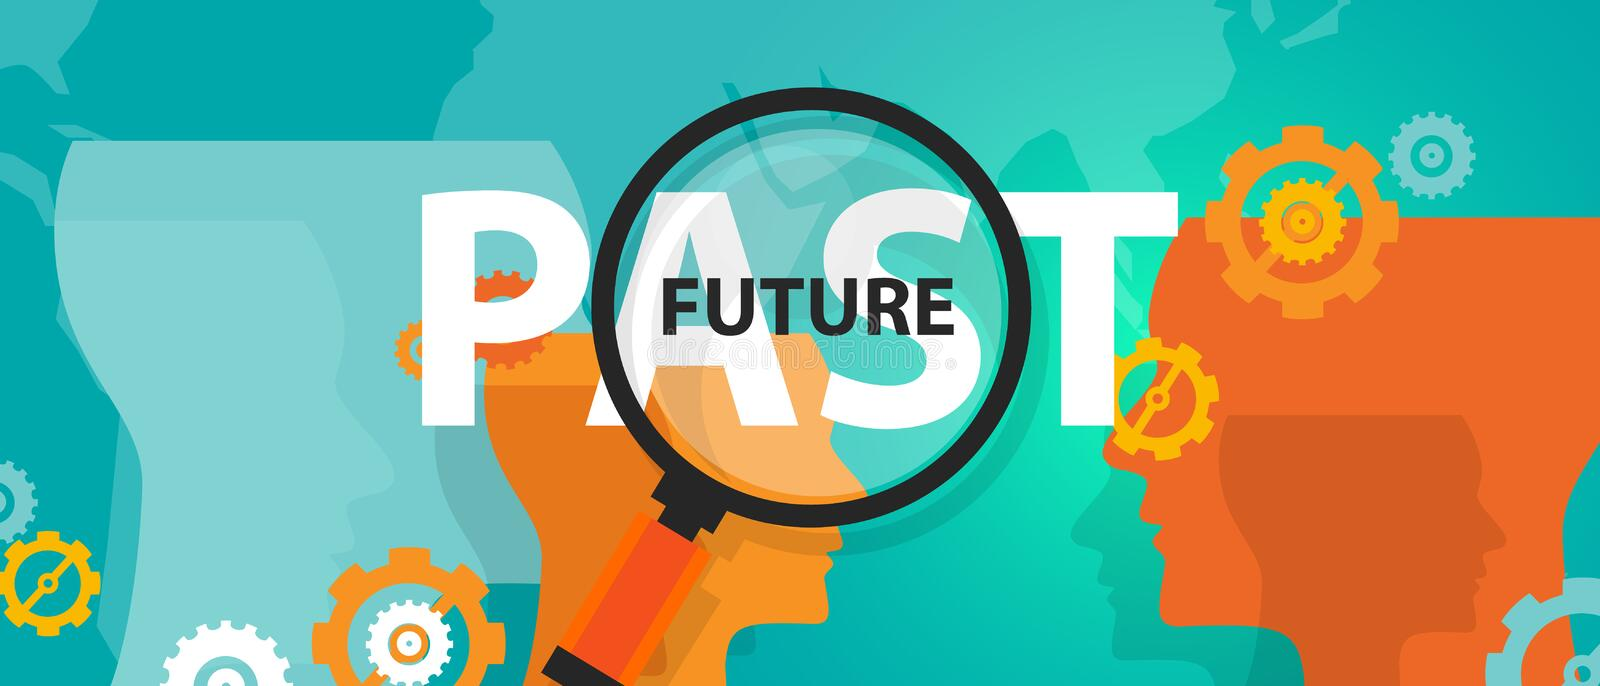 Future past now concept of thinking planing tomorrow analysis mindset thoughts vector illustration